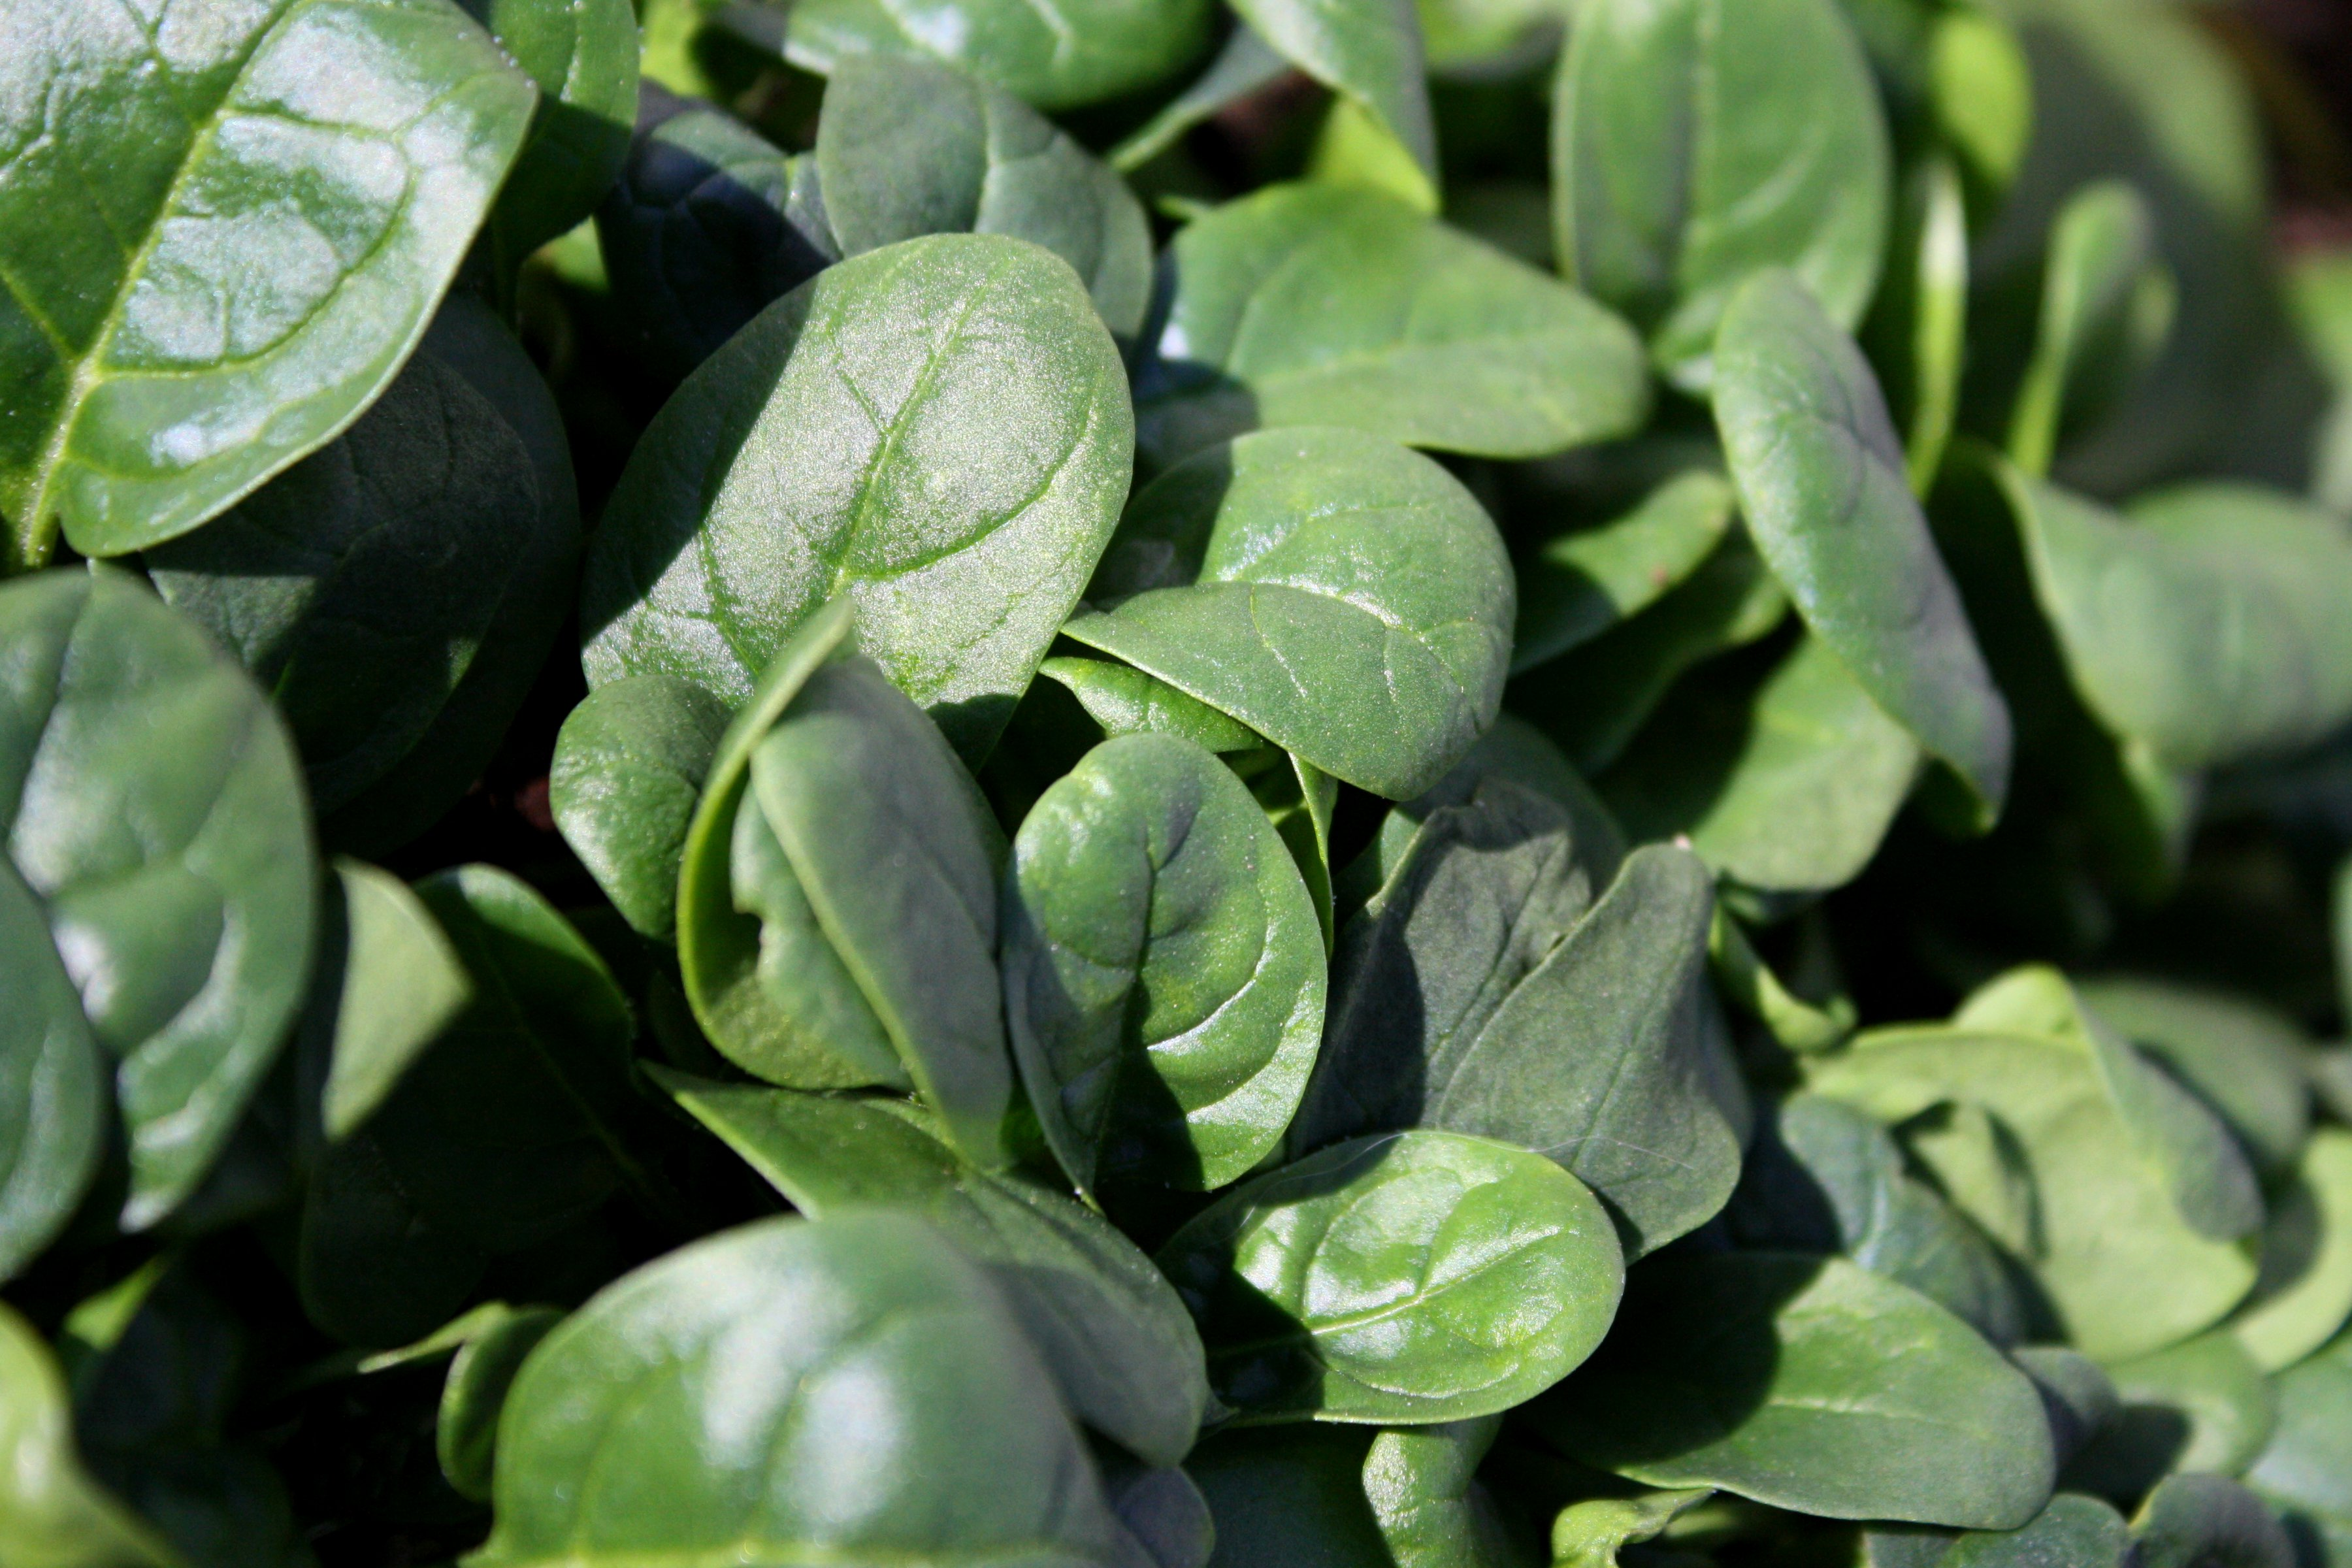 Baby Spinach - Free High Resolution Photo - Dimensions: 3600 × 2400